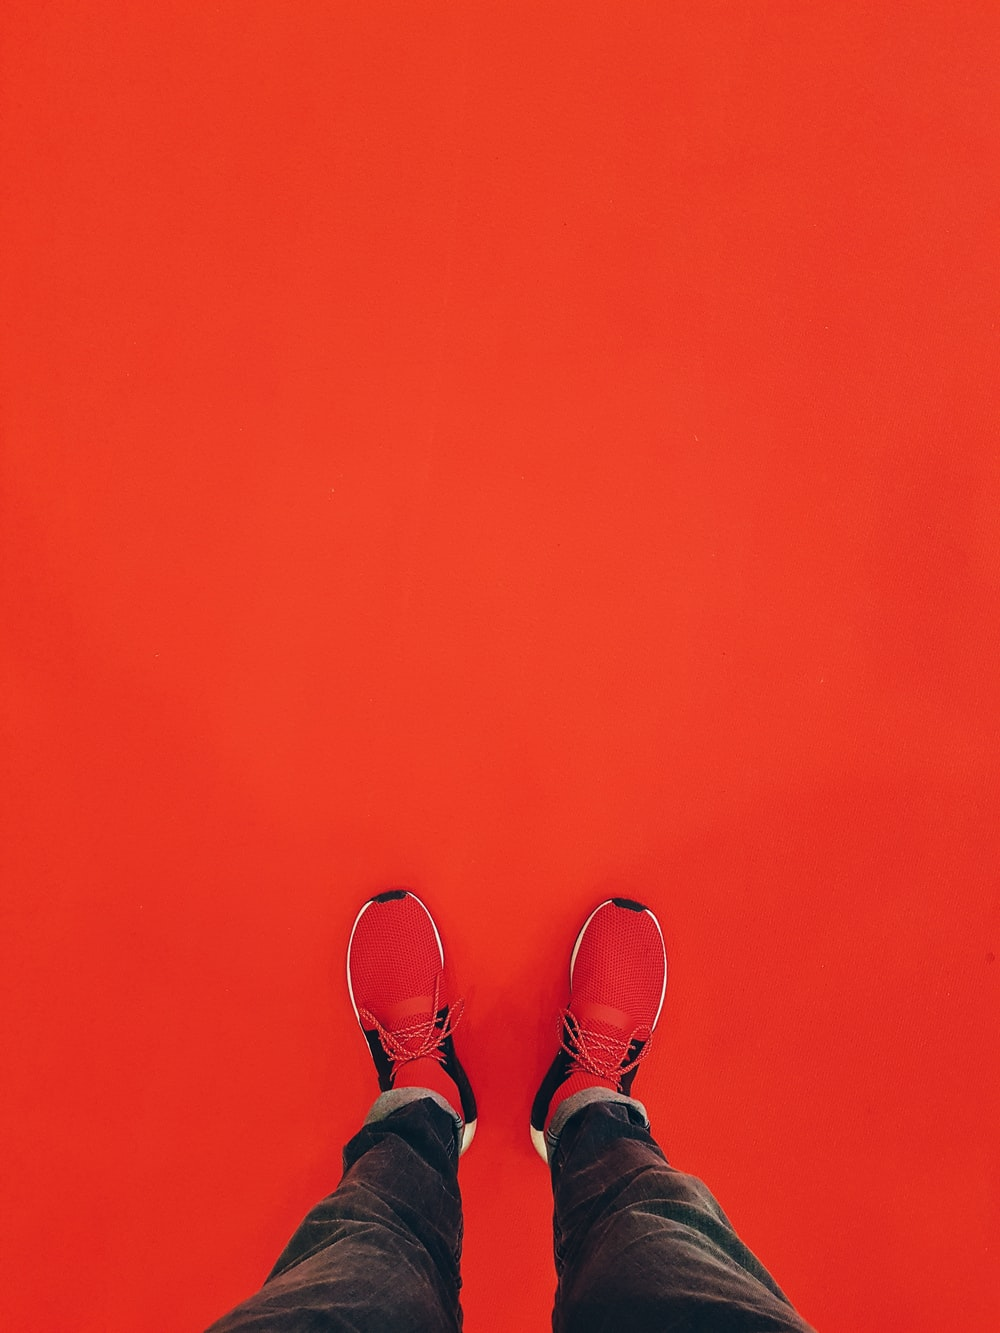 person wearing red running shoe